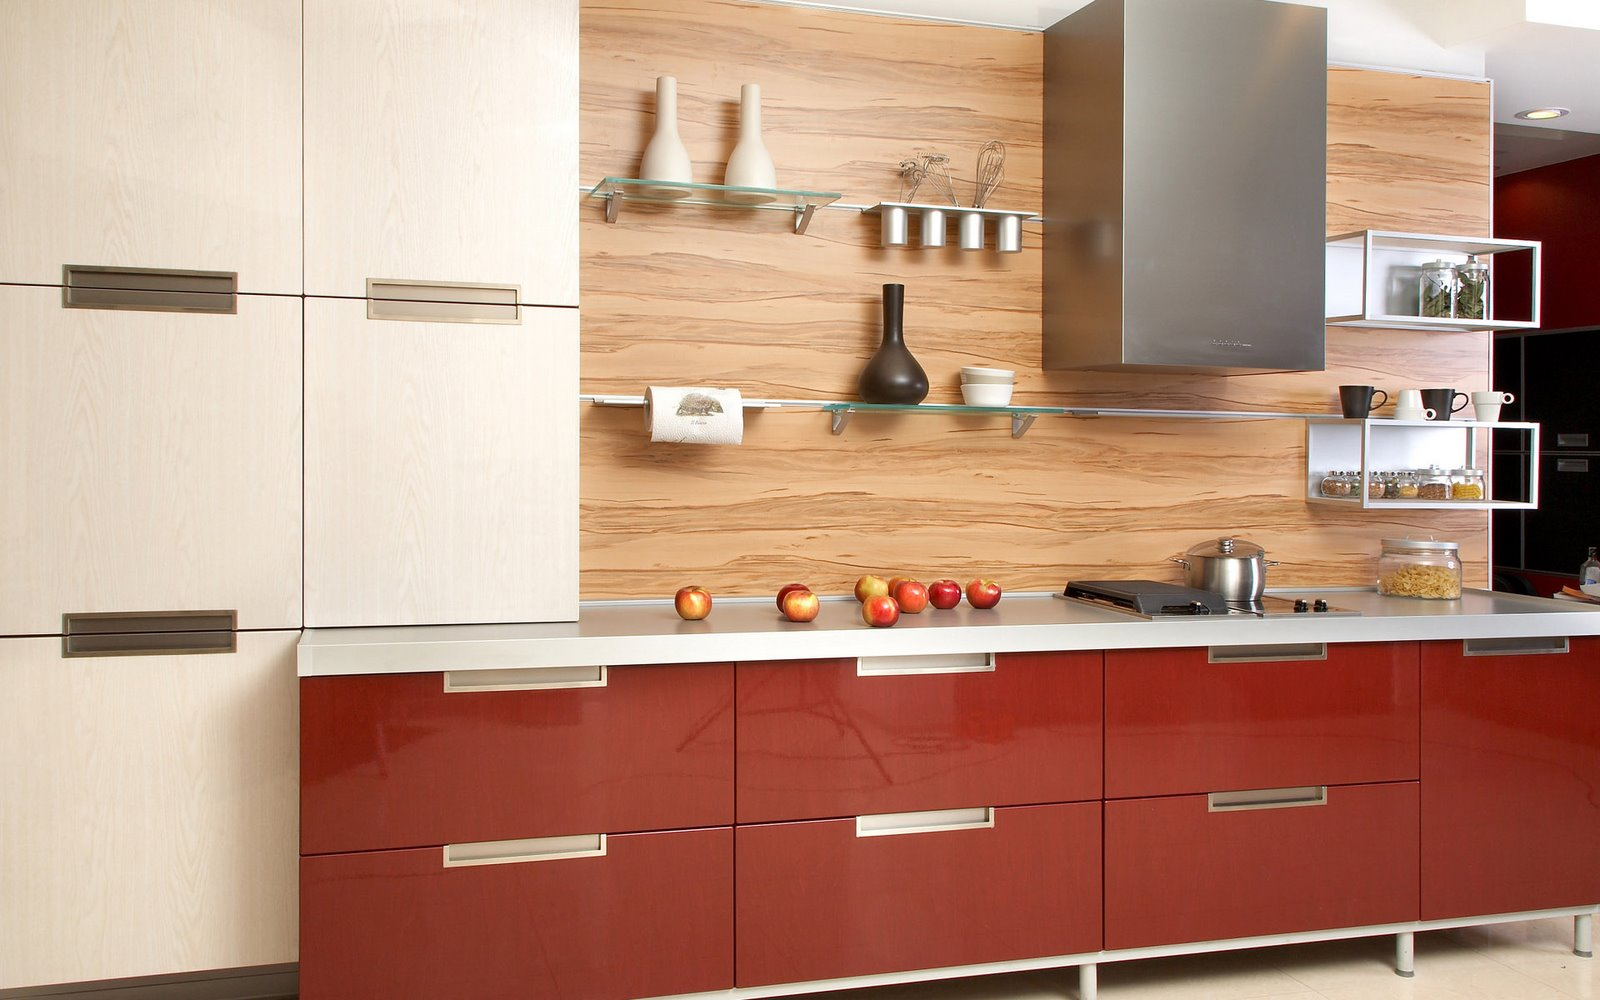 Modern wood kitchen design dream kitchens pinterest for Modern kitchen layout